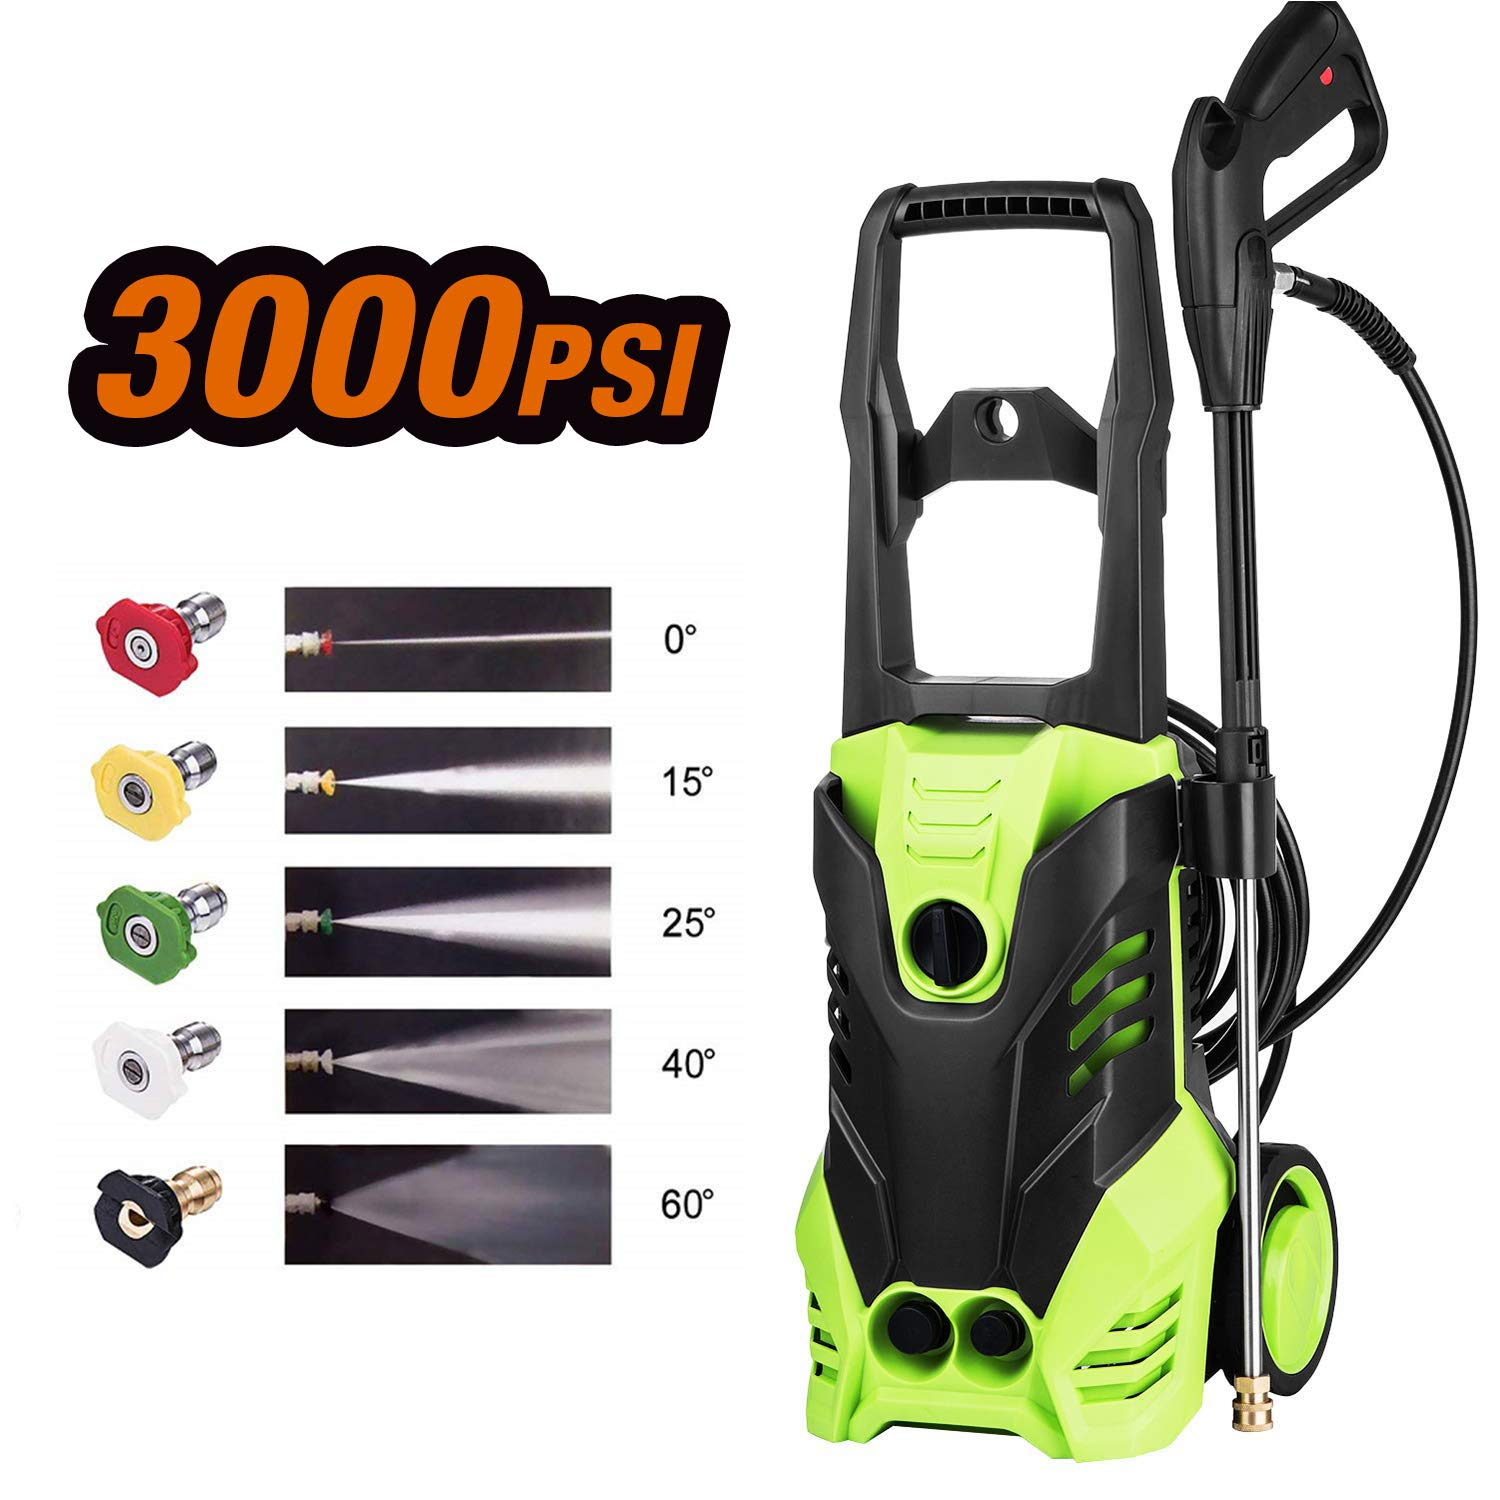 Homdox Electric Pressure Washer 3000 PSI, 14.5-Amp 1800W Power Washer Cleaner Machine with 5 Quick-Connect Spray Nozzles Green